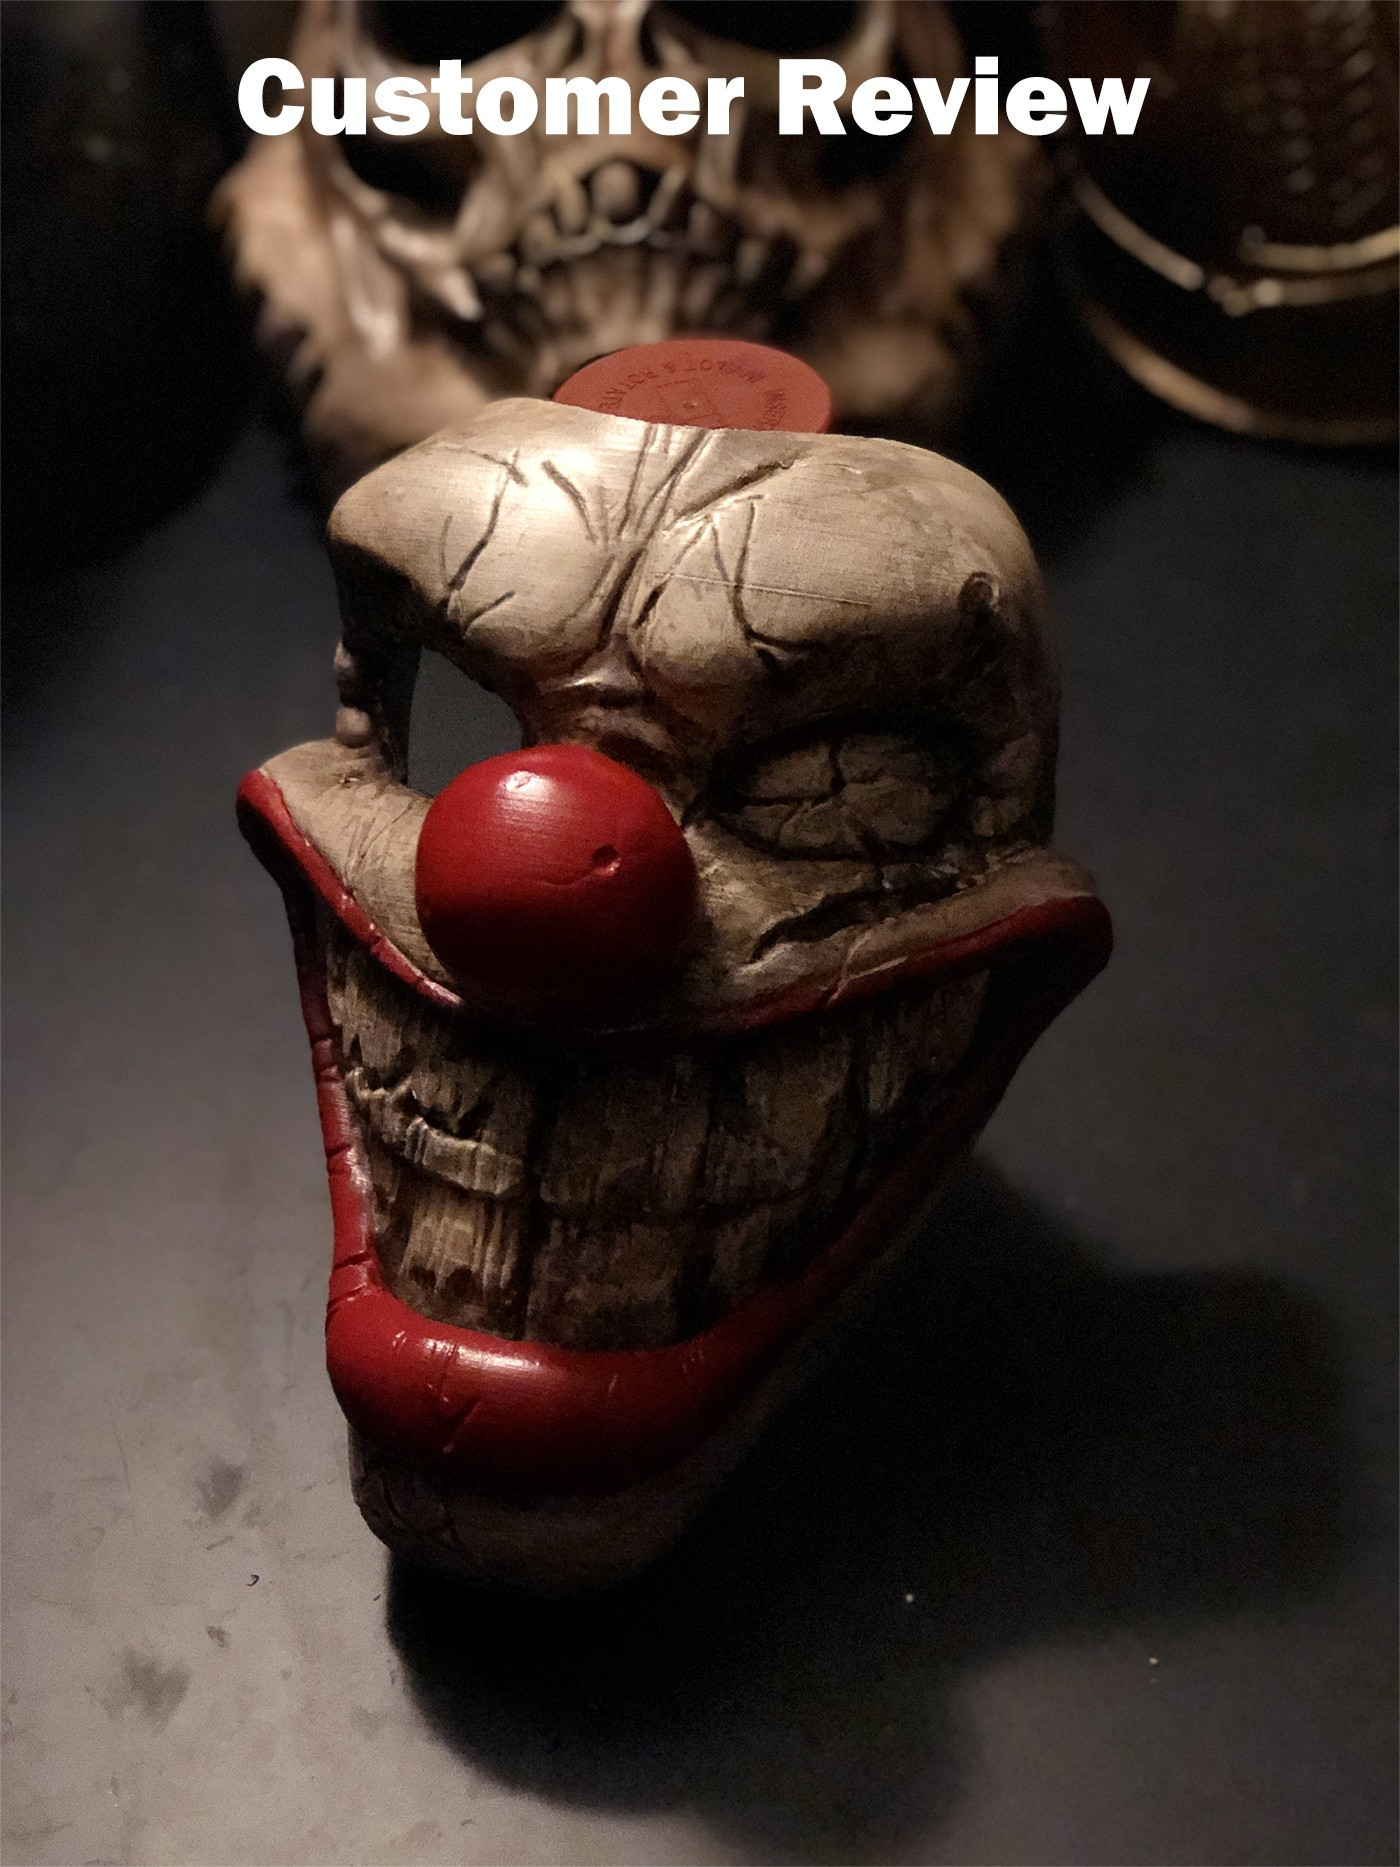 twisted metal killer clown mask review 01.jpeg Download STL file Twisted Metal Killer Clown Mask  • 3D printer model, 3DPrintModelStoreSS